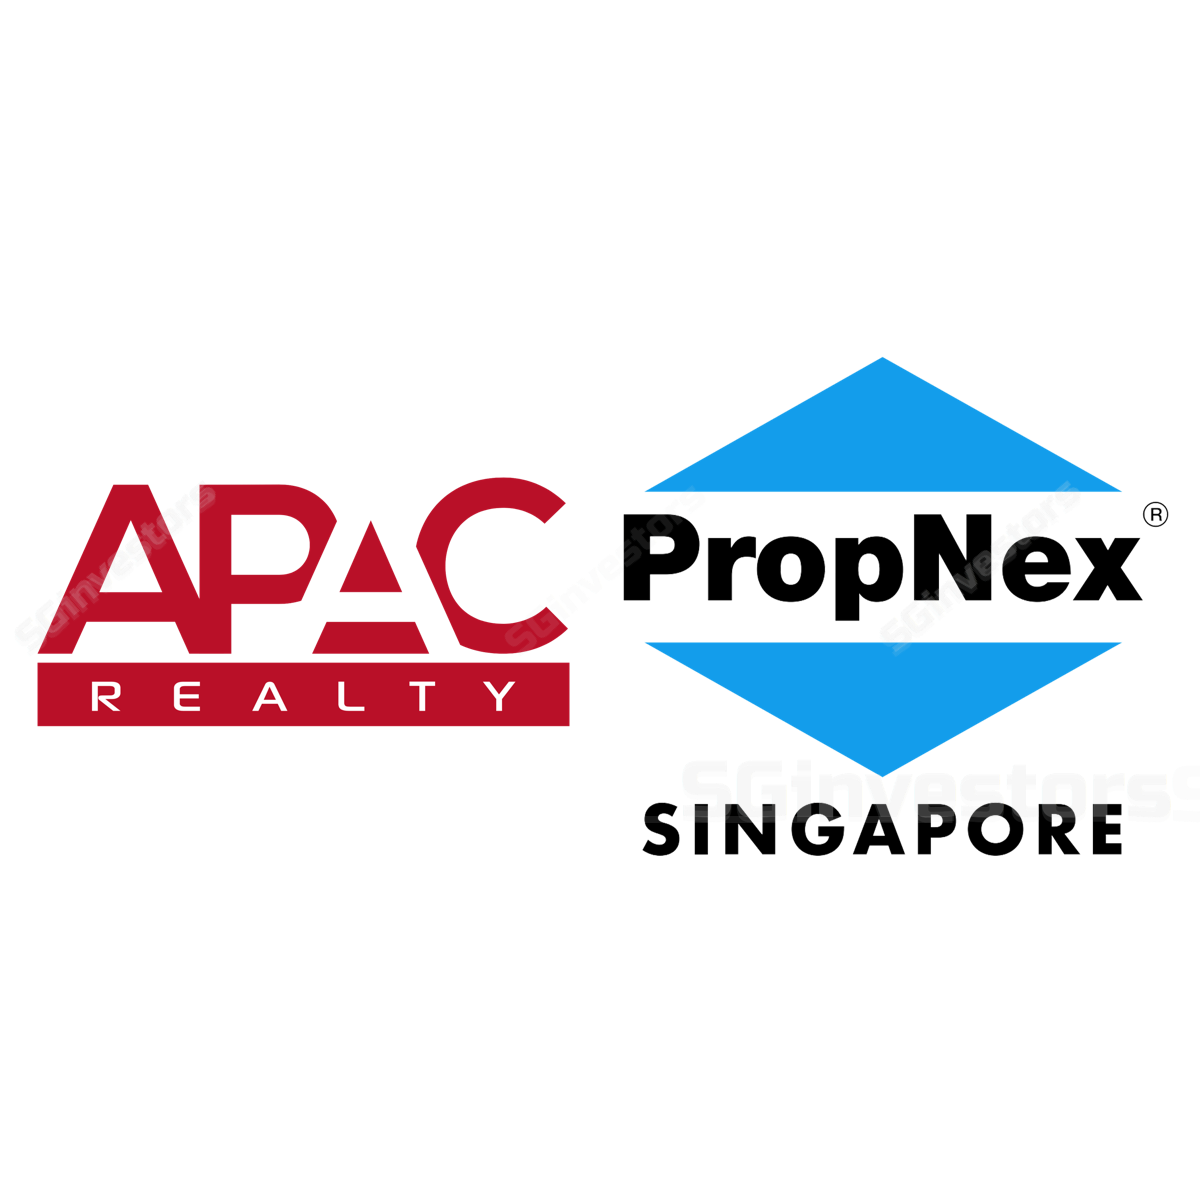 Singapore Property Brokerage Sector - APAC Realty and PropNex | SGinvestors.io